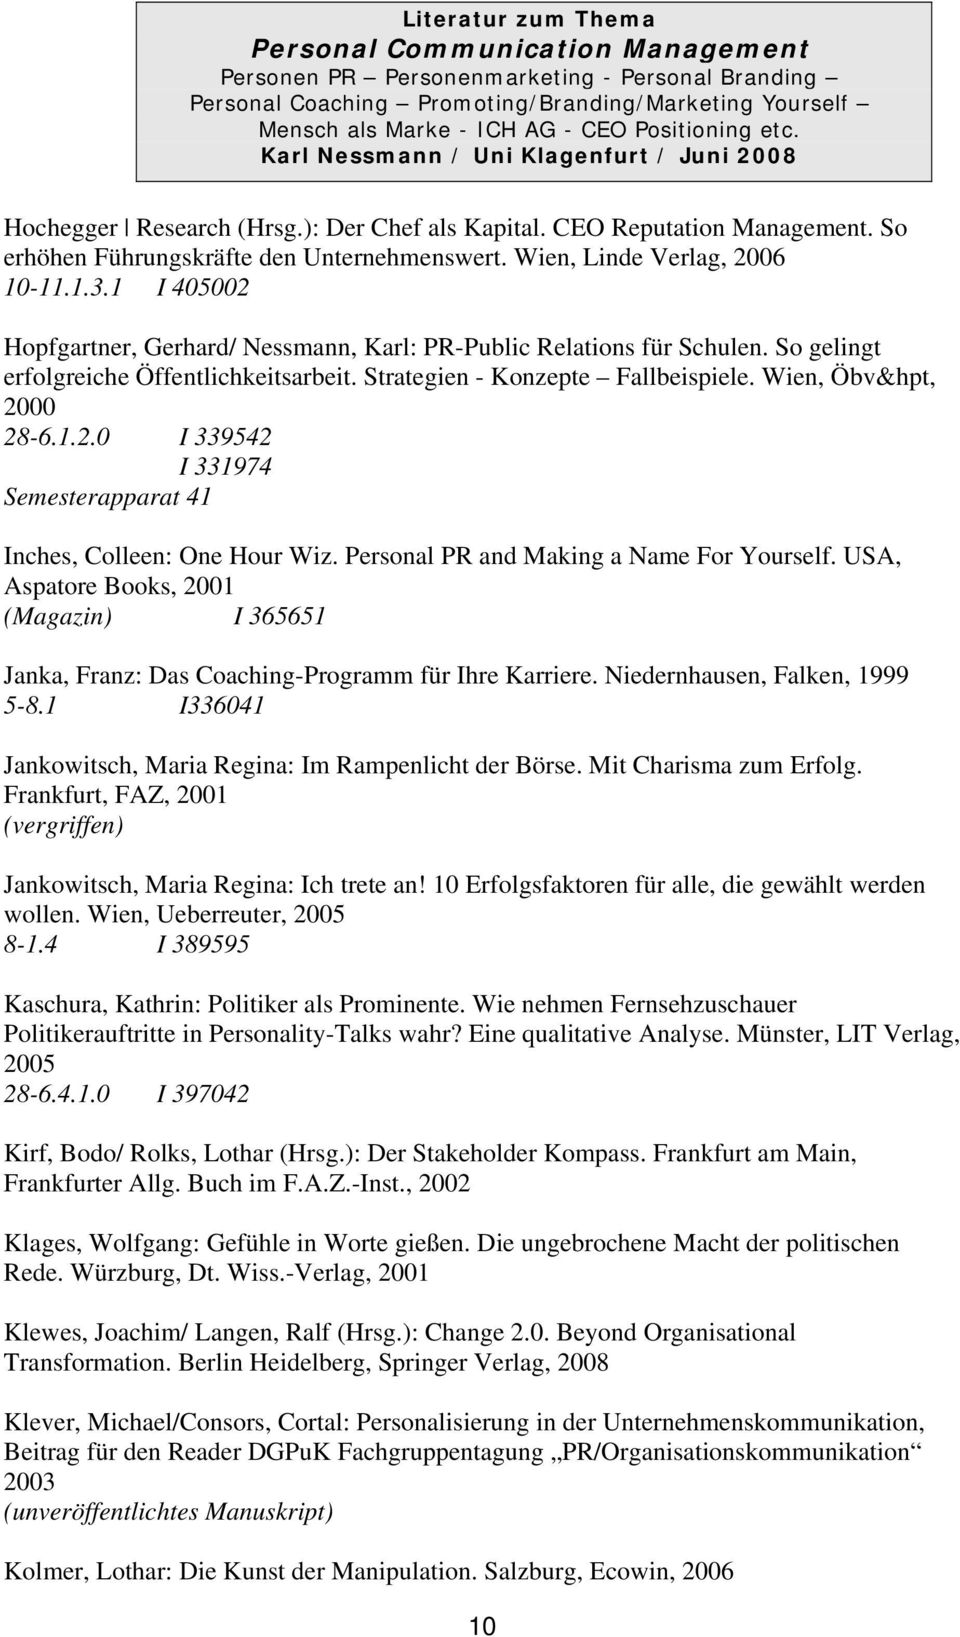 Personal PR and Making a Name For Yourself. USA, Aspatore Books, 2001 (Magazin) I 365651 Janka, Franz: Das Coaching-Programm für Ihre Karriere. Niedernhausen, Falken, 1999 5-8.